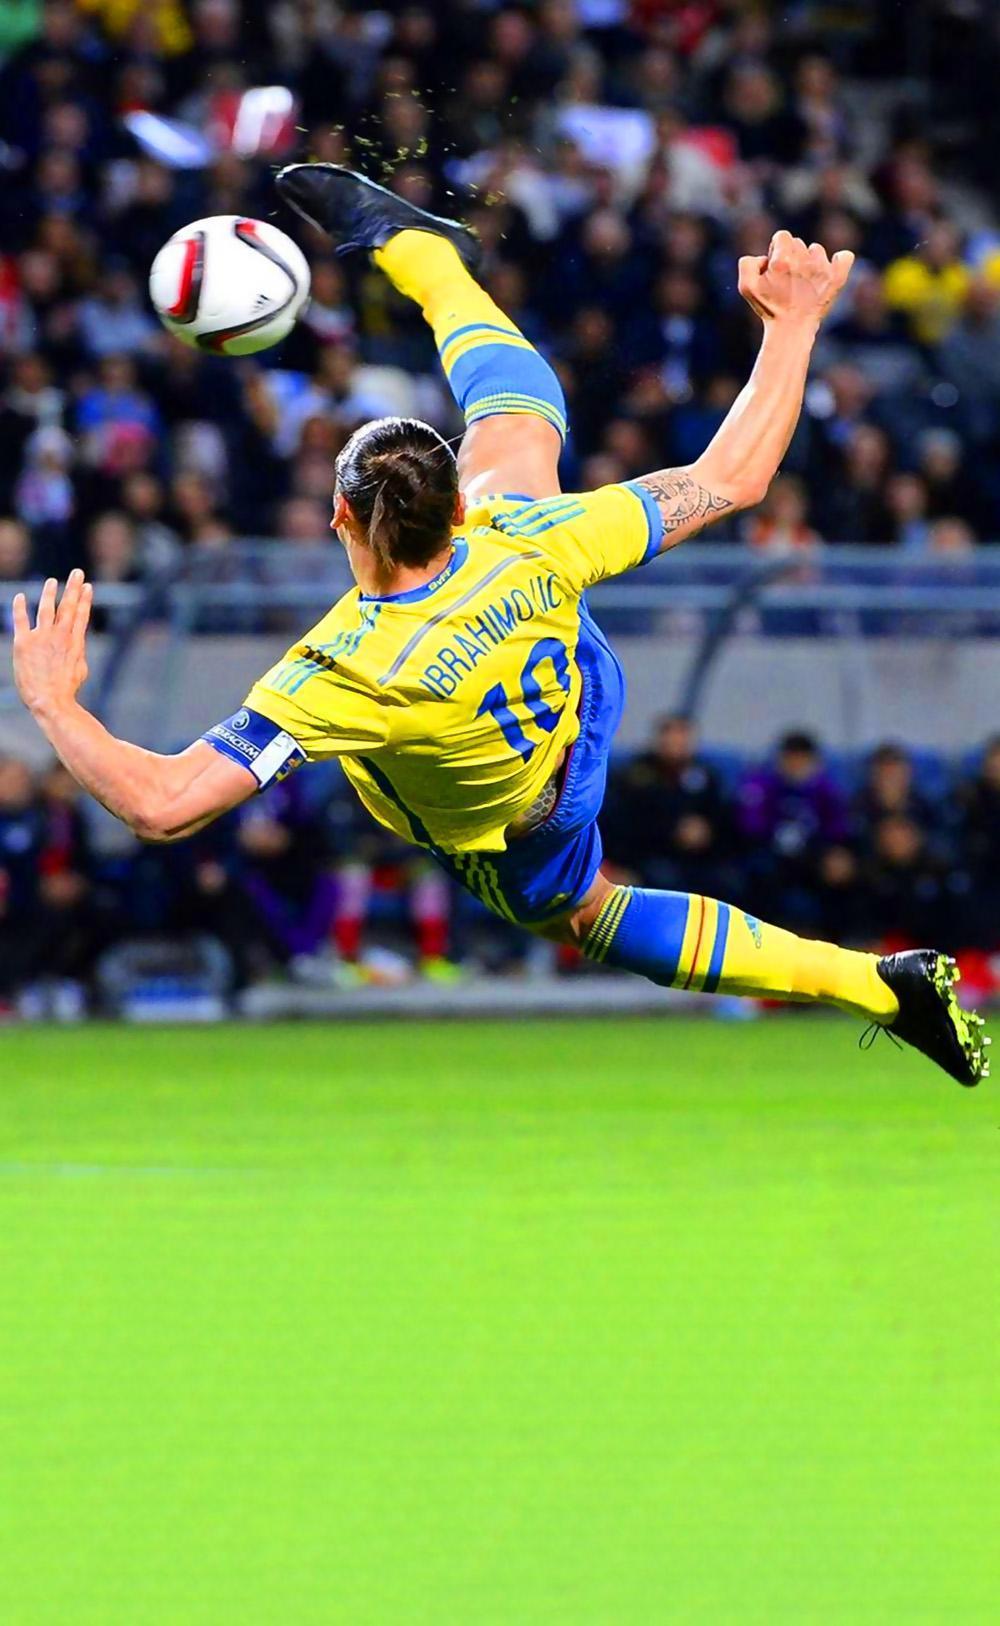 HD Zlatan Ibrahimovic Soccer Wallpapers para Android - APK Descargar